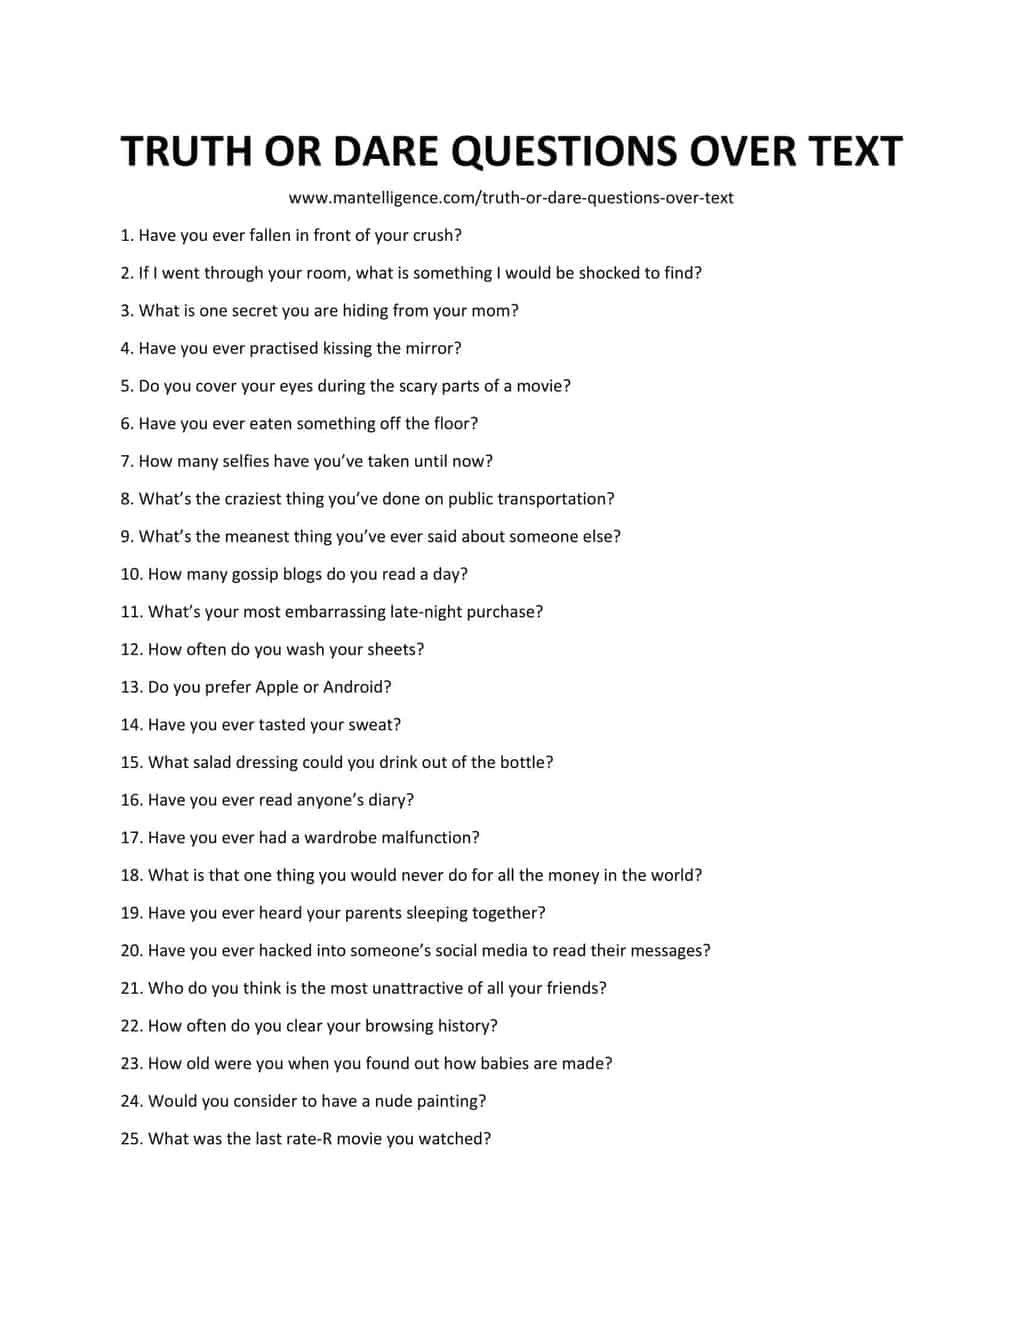 Downloadable List of Truth or Dare Questions Over Text